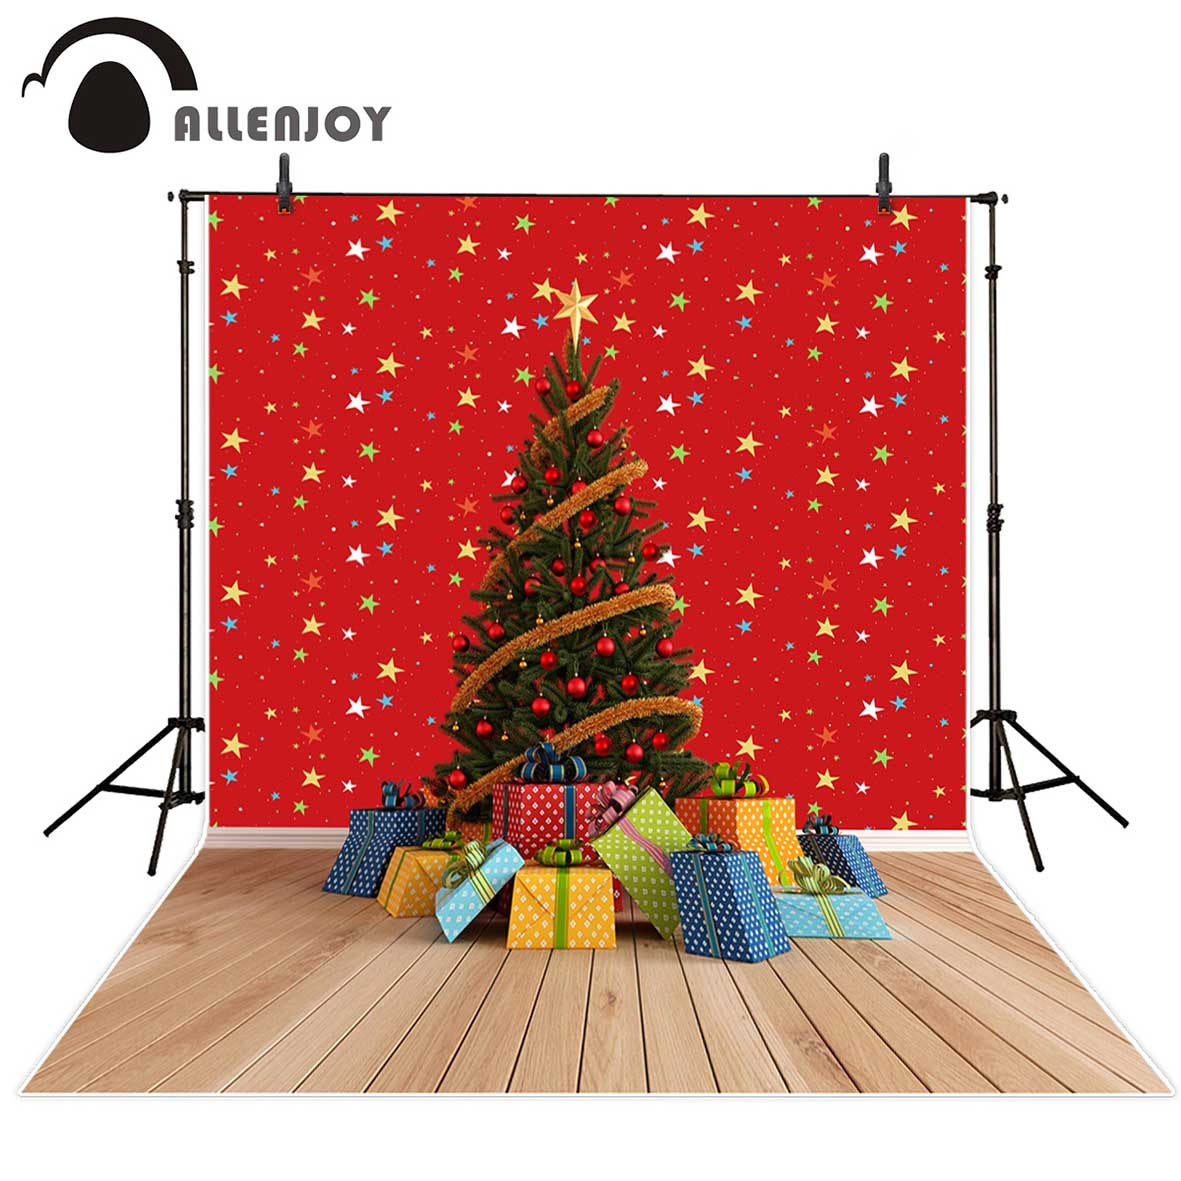 Allenjoy photography backdrop Christmas tree gifts red wall colorful stars professional background photo prop photobooth